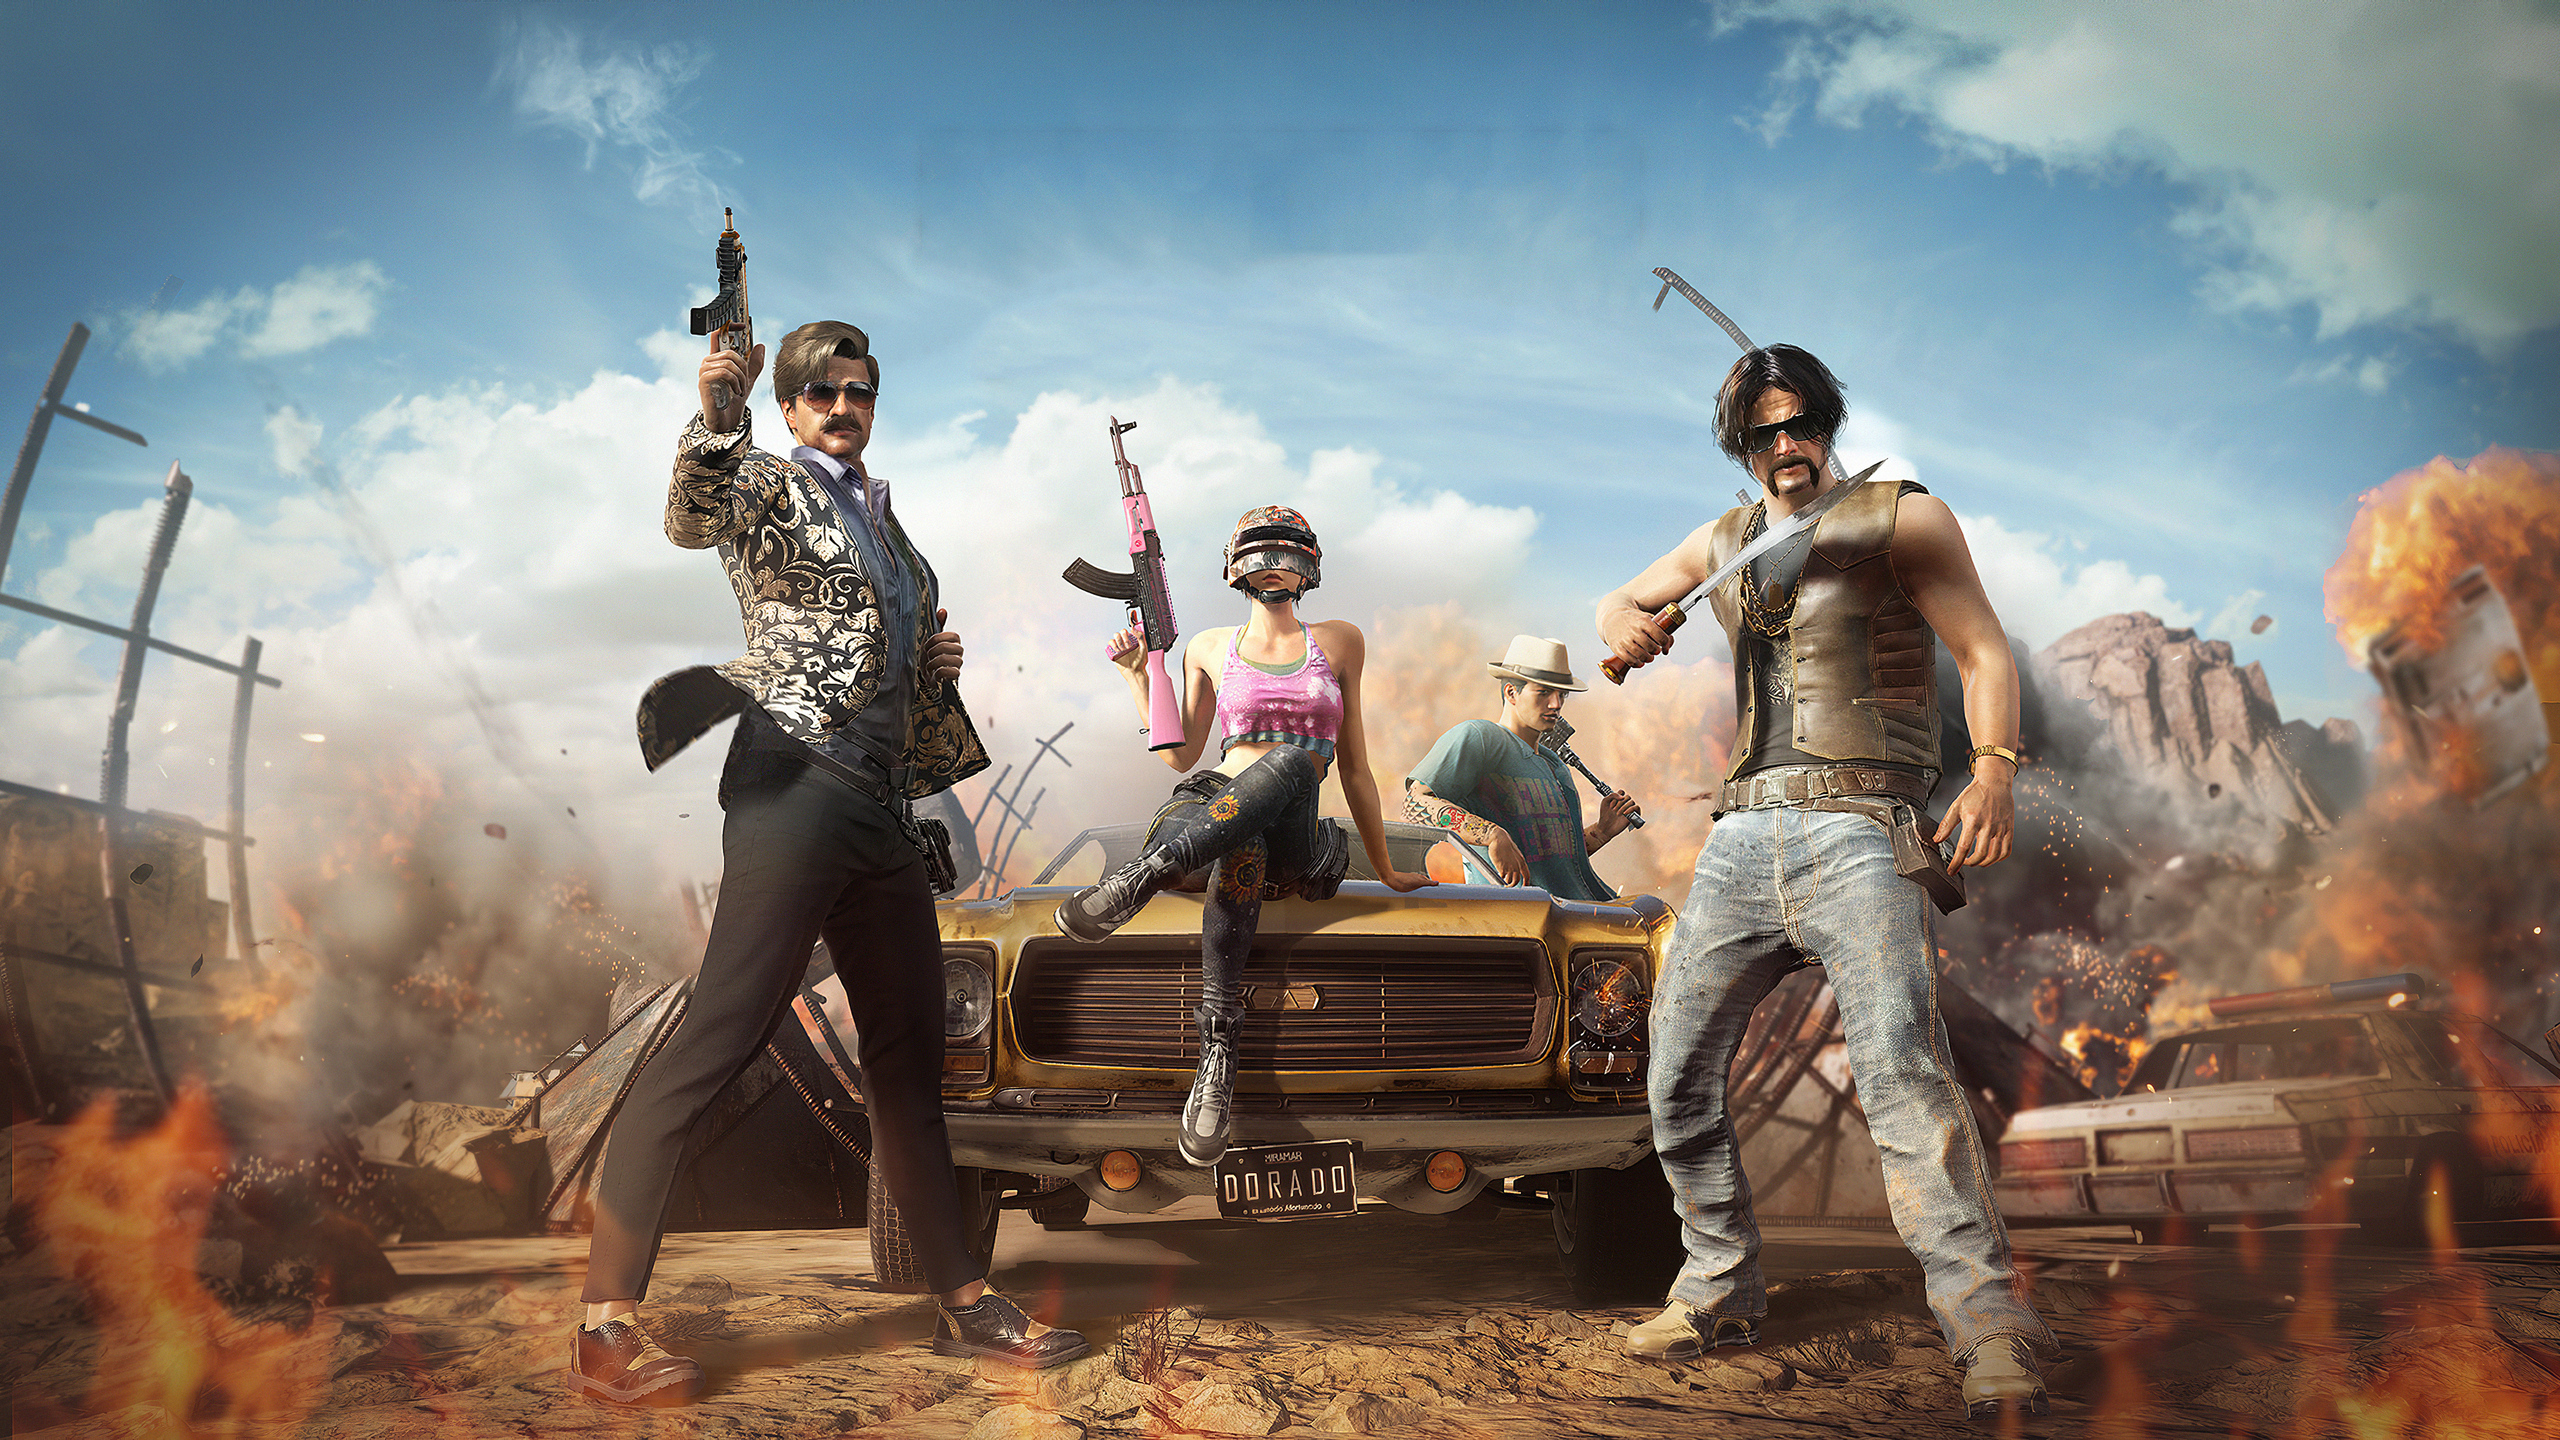 2560x1440 Pubg Warrior 4k 1440p Resolution Hd 4k Wallpapers Images Backgrounds Photos And Pictures